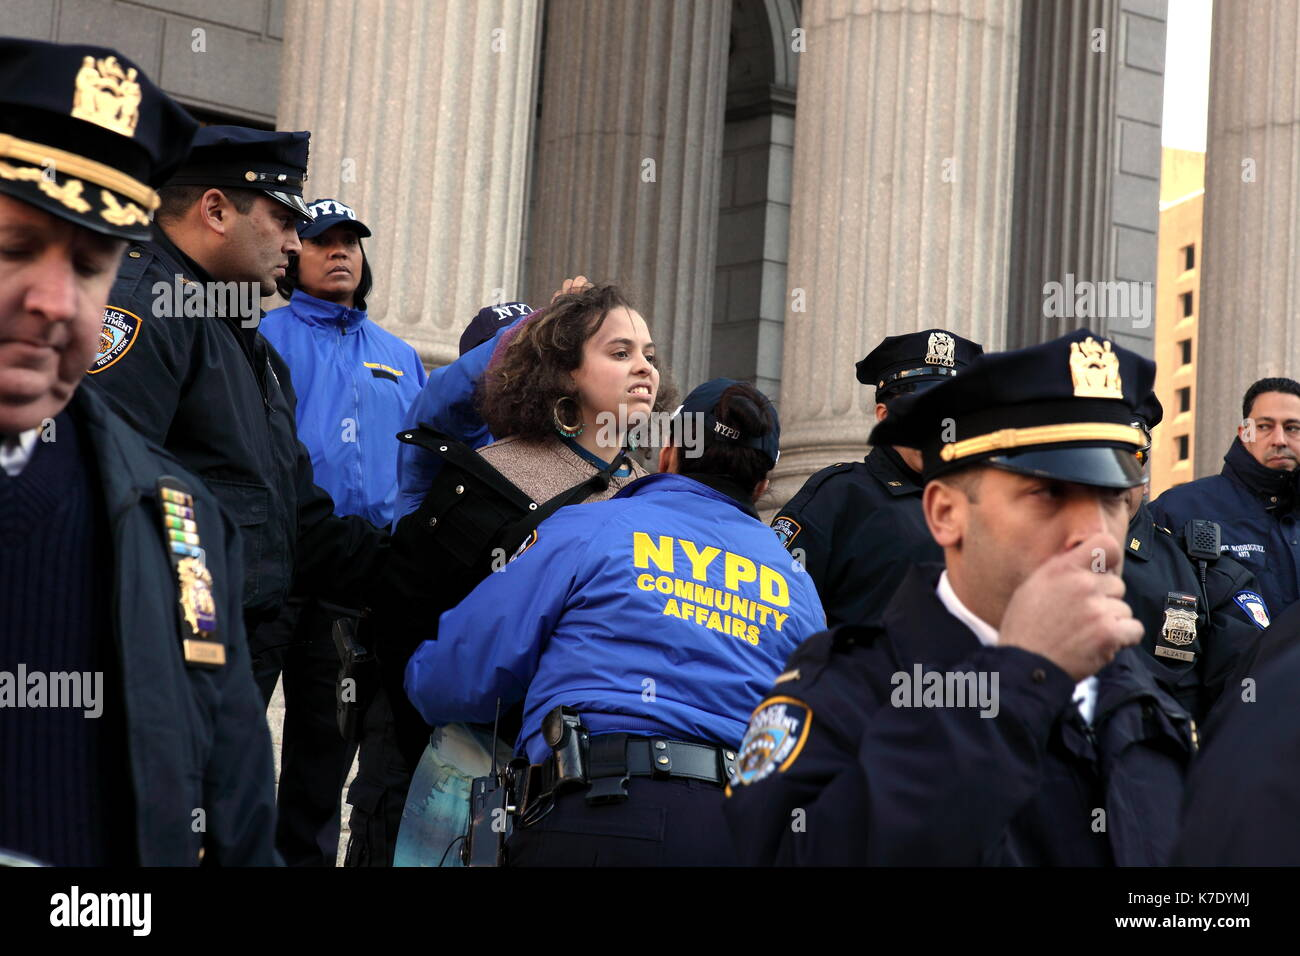 NYPD officers arrest a young woman as she attempts to stand on the steps of the New York County Supreme Court at Stock Photo